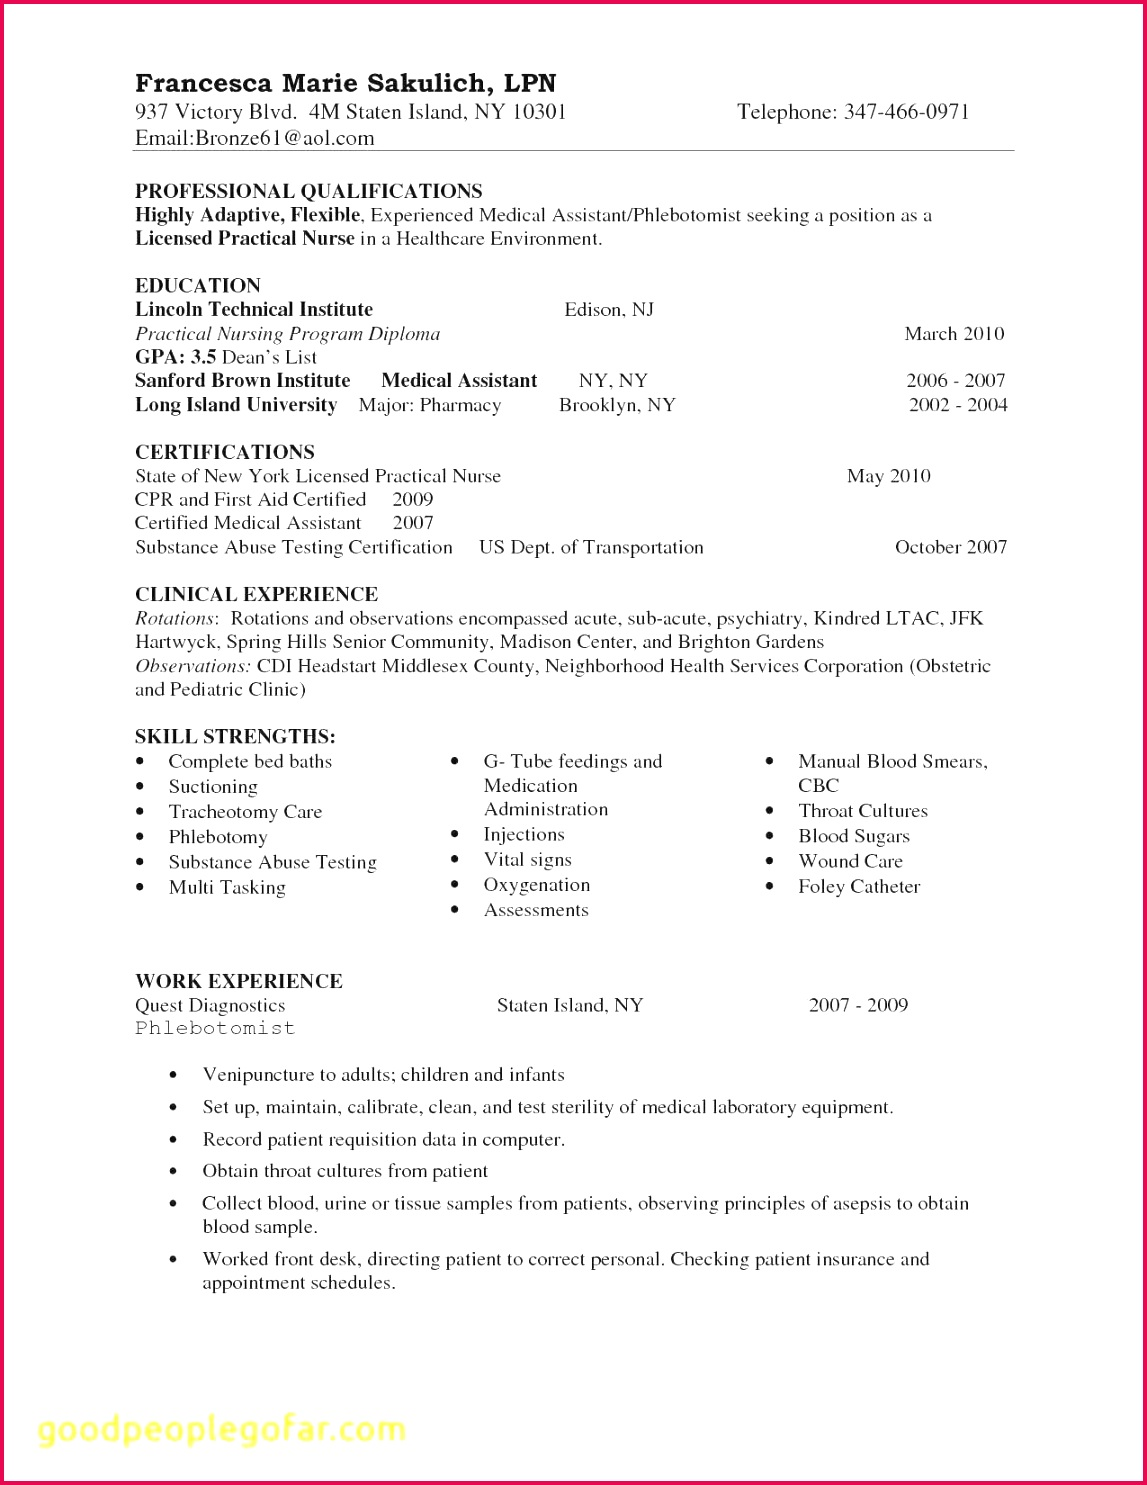 resume with certifications sample to her with best fresh grapher resume sample beautiful quotes 0d pretty template of resume with certifications sample